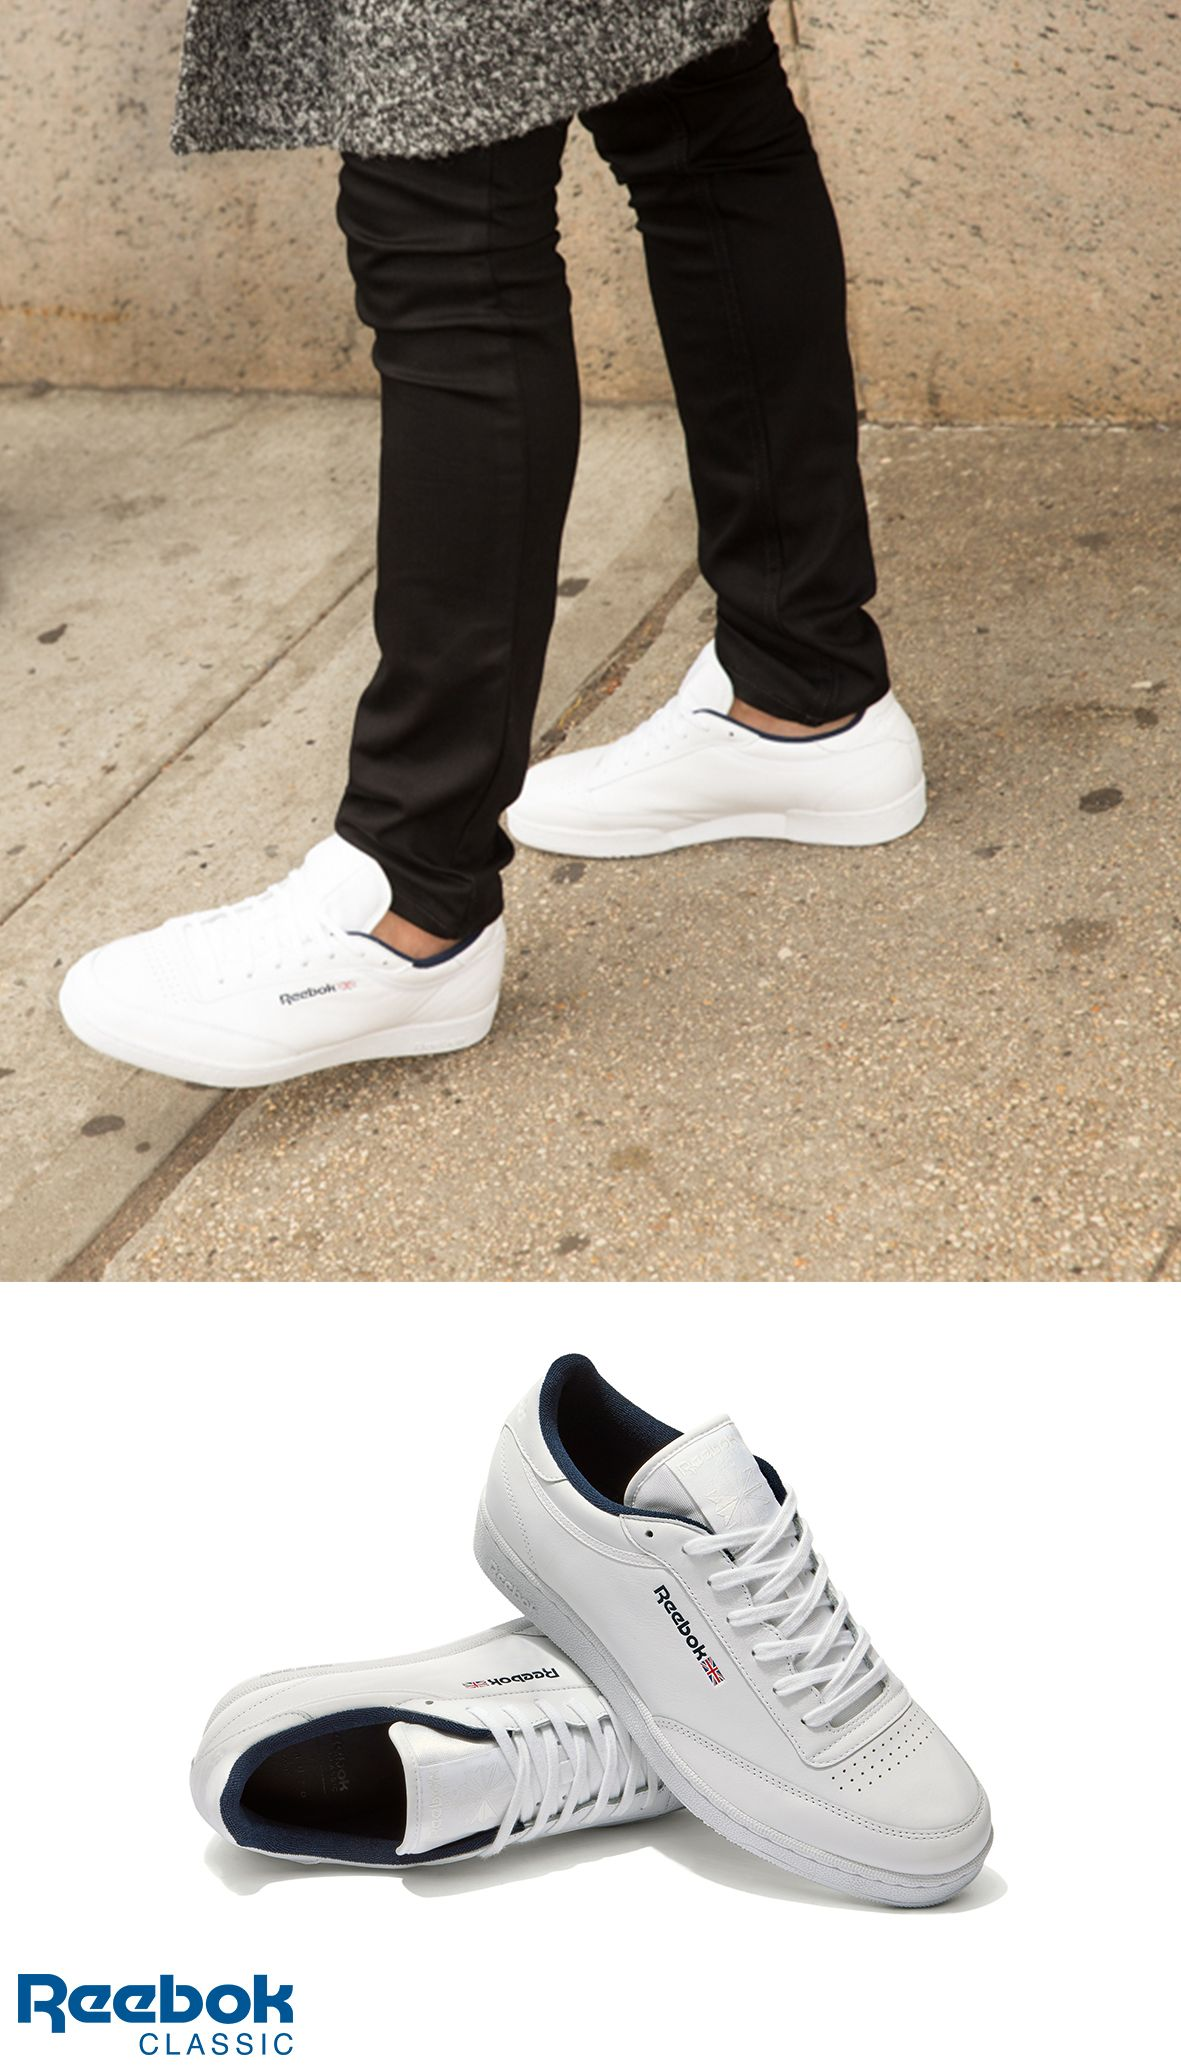 b4032acd9585b Your new go-to sneaker. The Reebok X Sandro all white Club C men s shoe.